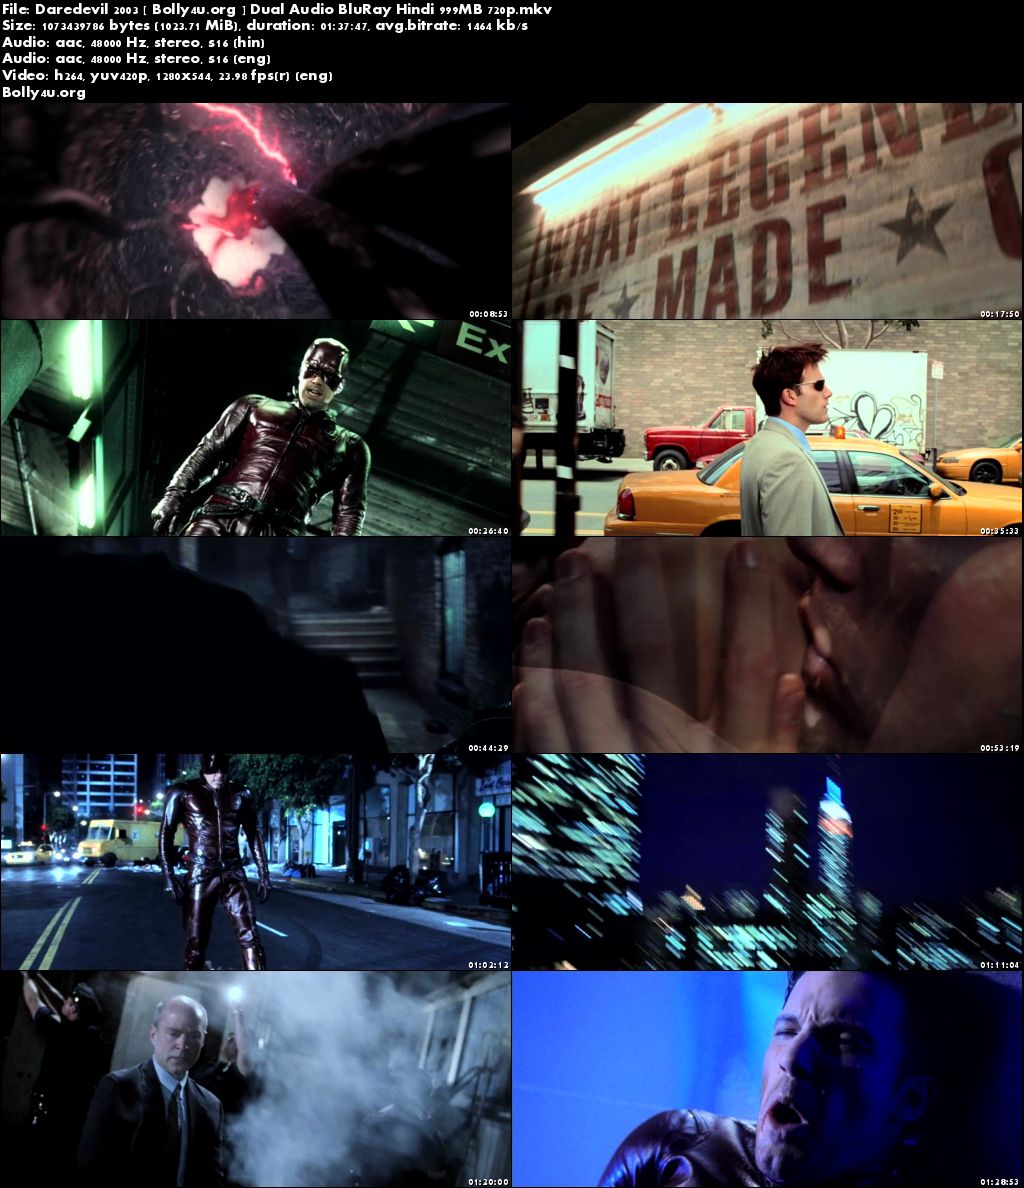 Daredevil 2003 BluRay 999MB Hindi Dual Audio 720p Download